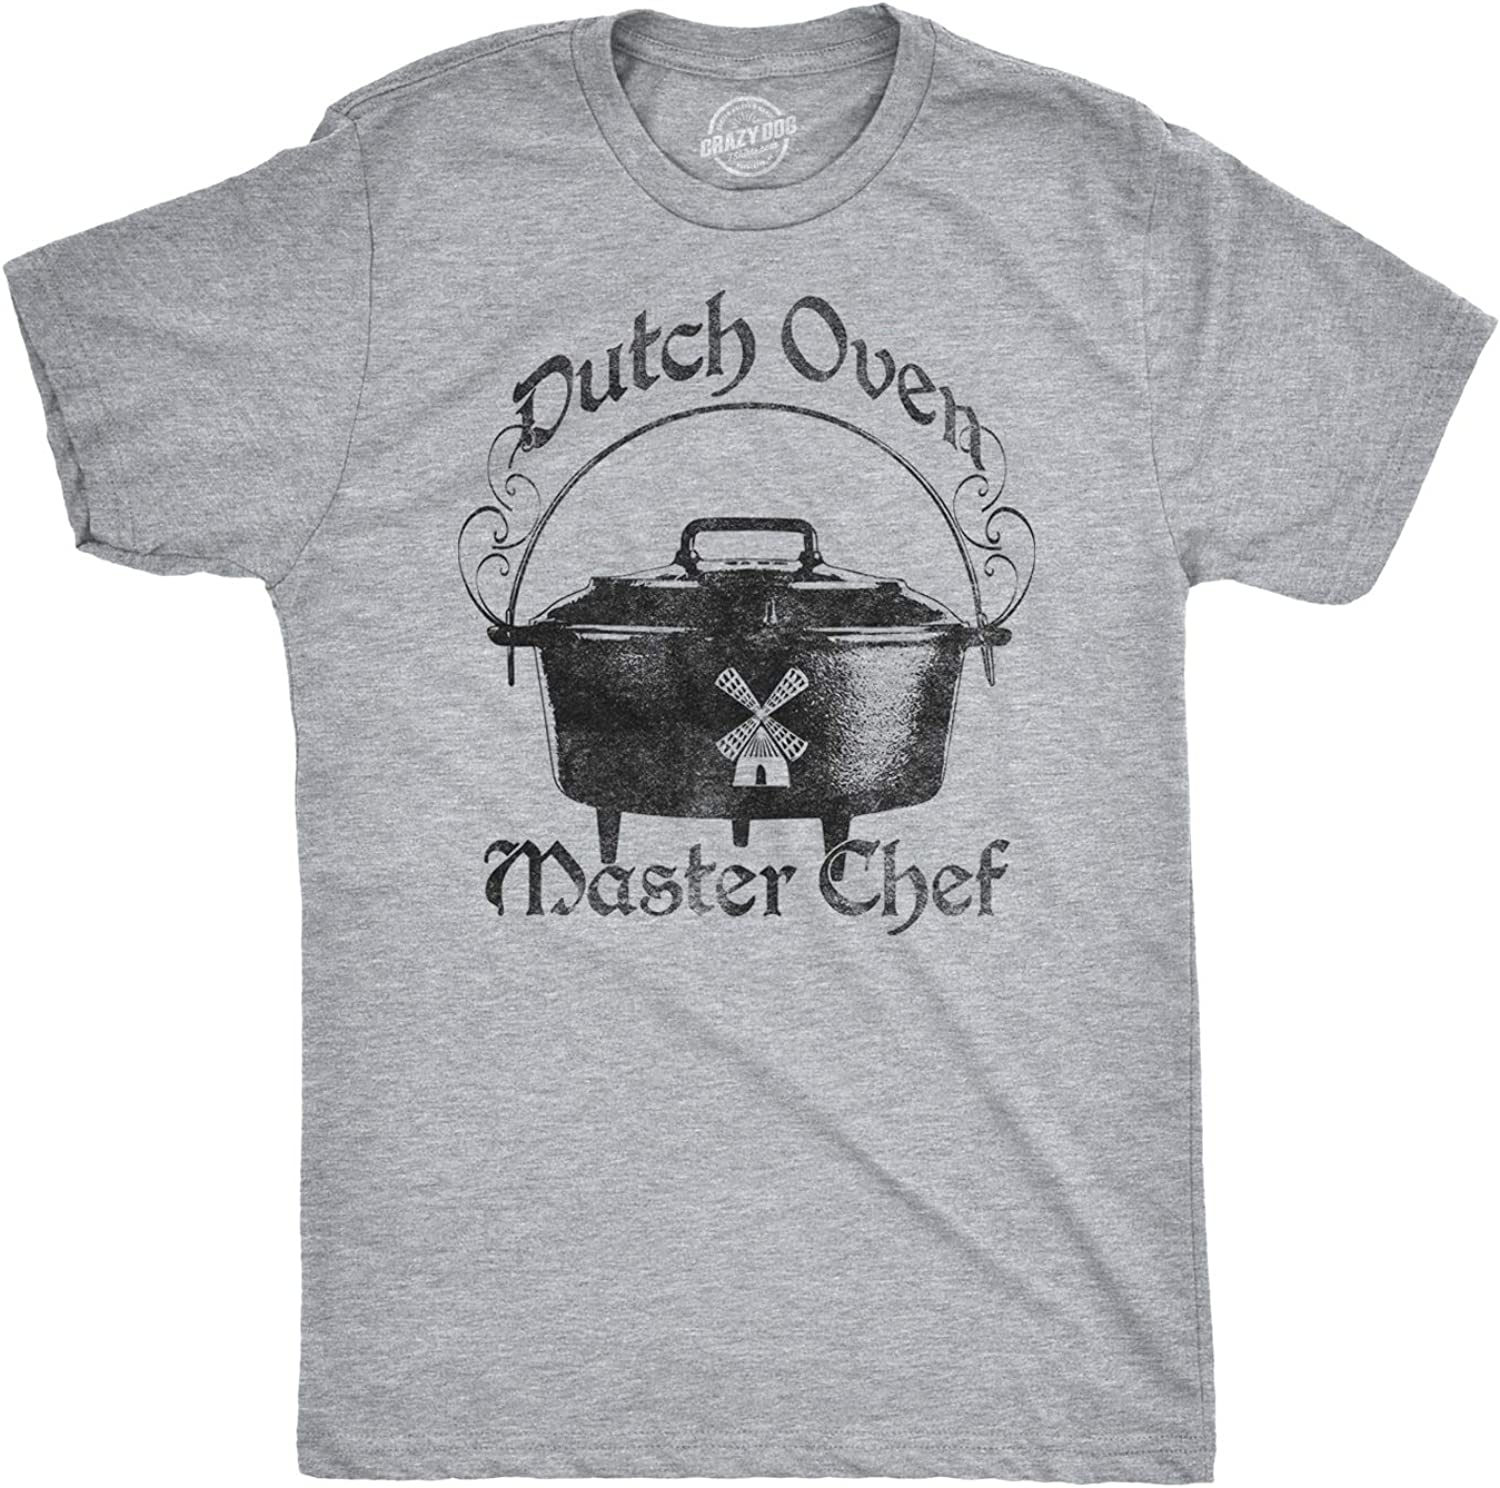 Mens Dutch Oven Funny Master Chef Hilarious Vintage Amish Cooking T Shirt